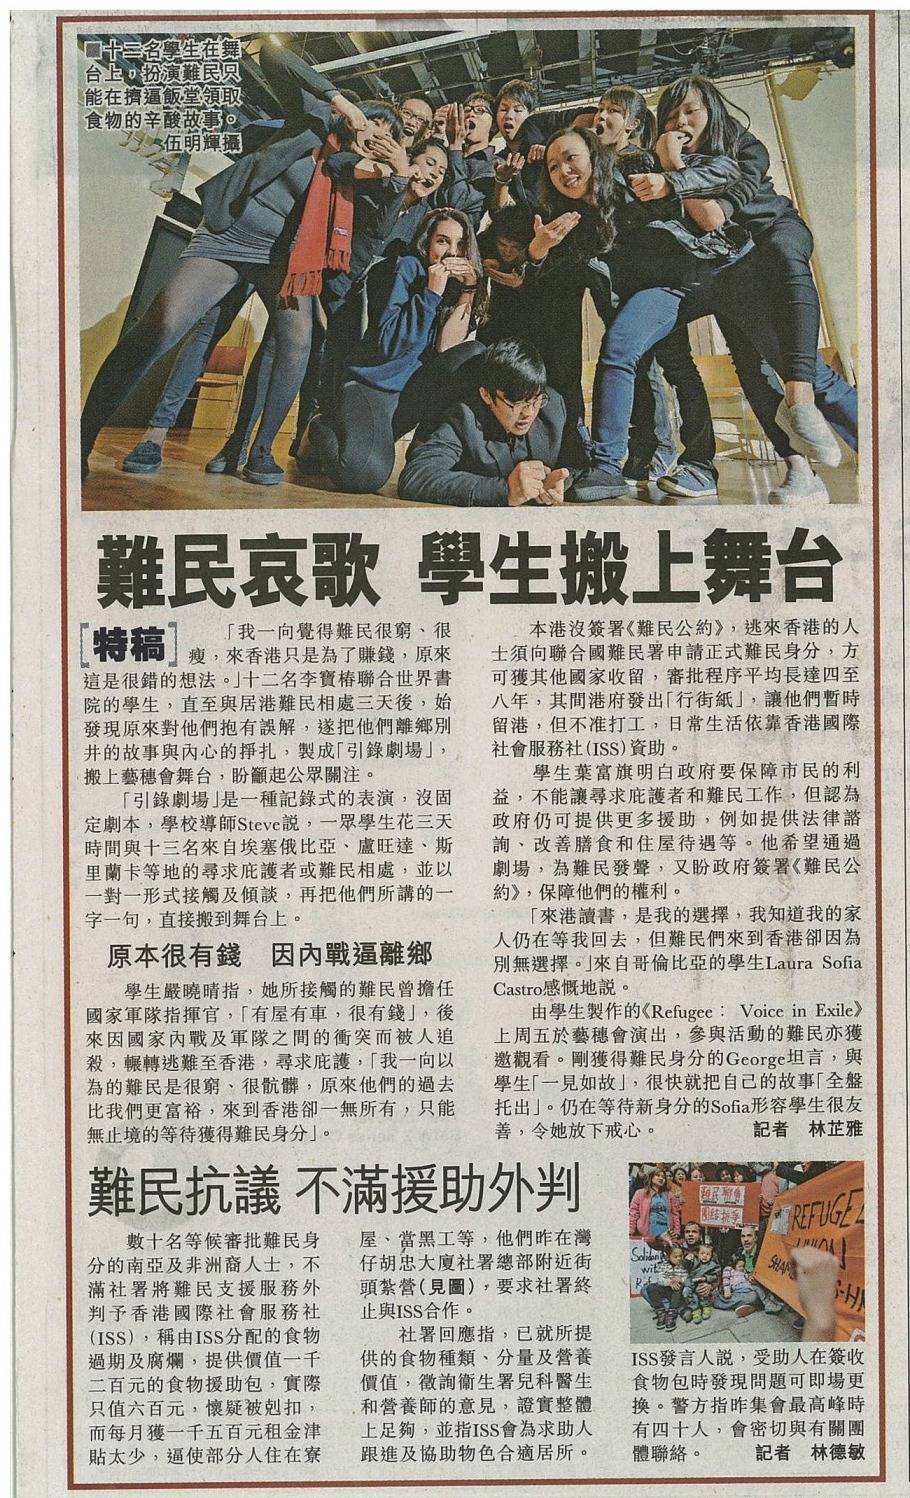 Interview of LPC students participated in Verbatim Theatre Charity Performance in Sing Tao